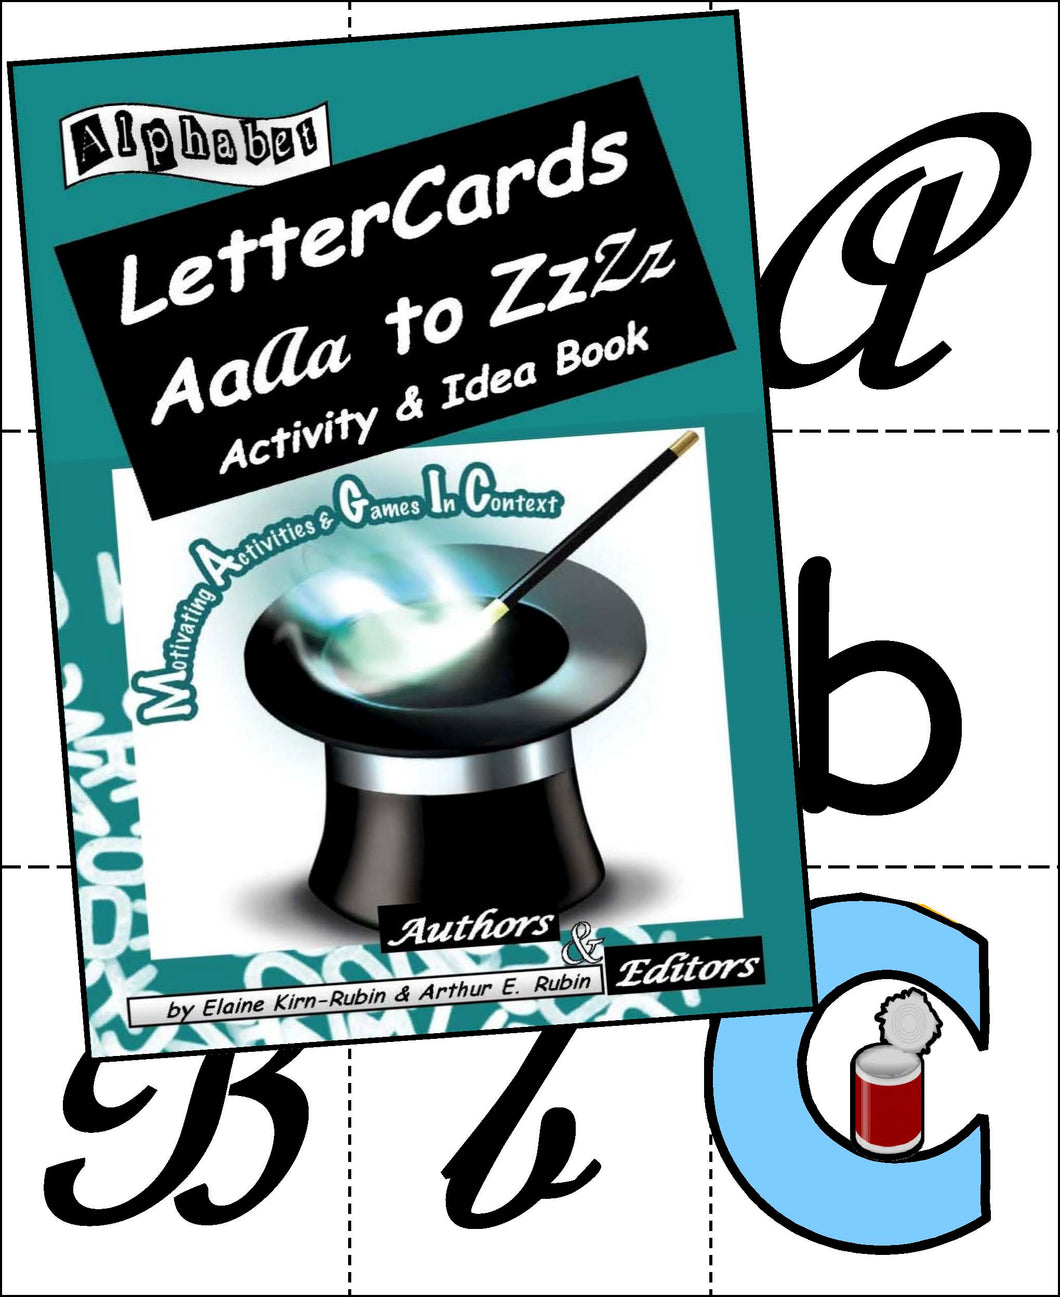 Alphabet Letter Cards Aa to Zz: Five 104-Card Packs + 24-Page Activities & Ideas Book